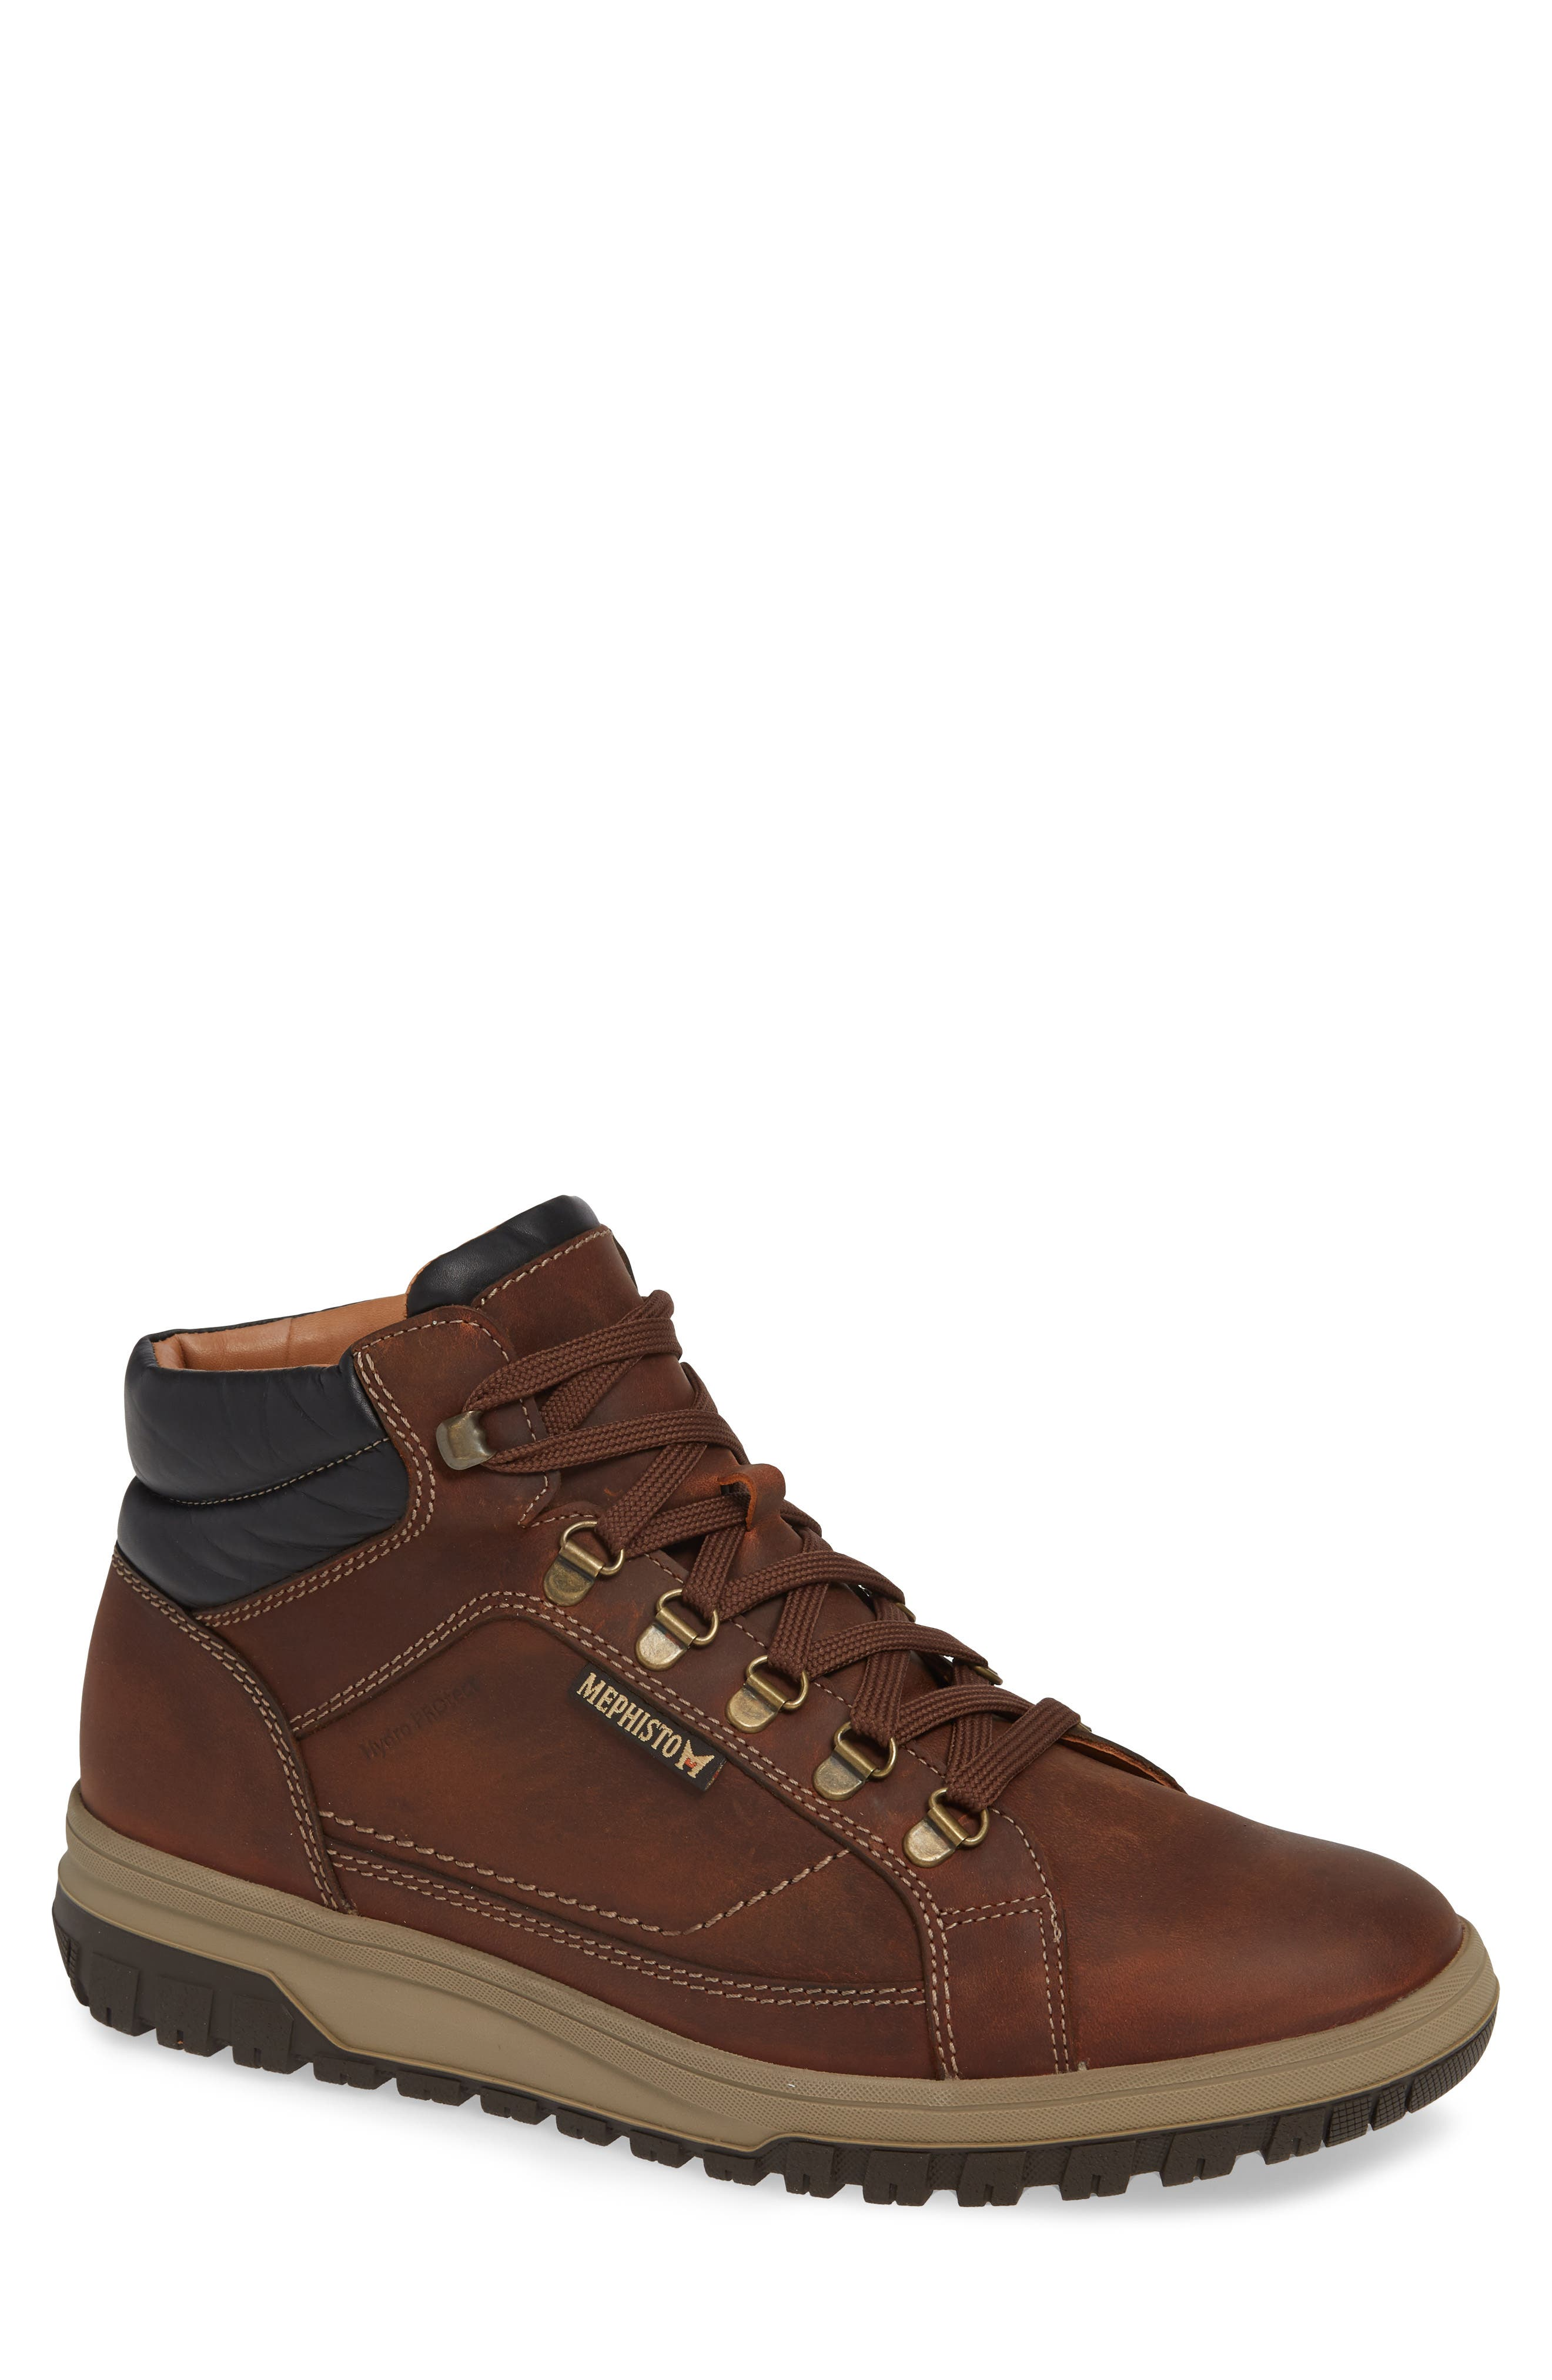 MEPHISTO Pitt Mid Lace-Up Boot, Main, color, 213